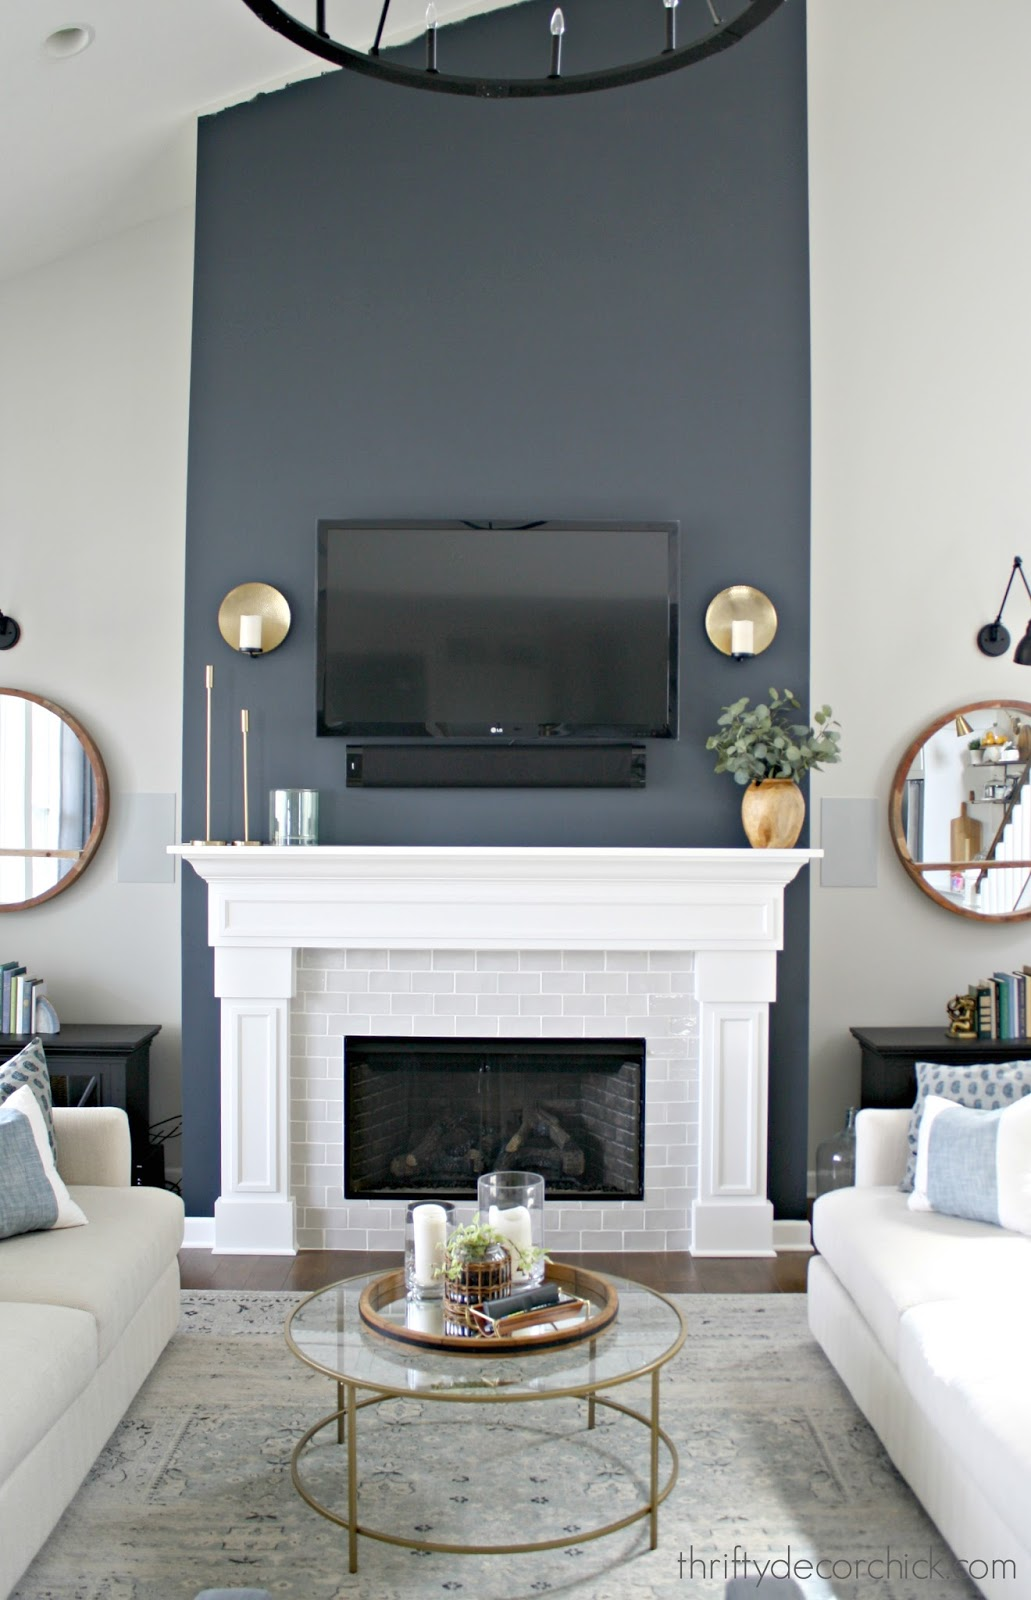 Dramatic Fireplace Transformation With Paint From Thrifty Decor Chick